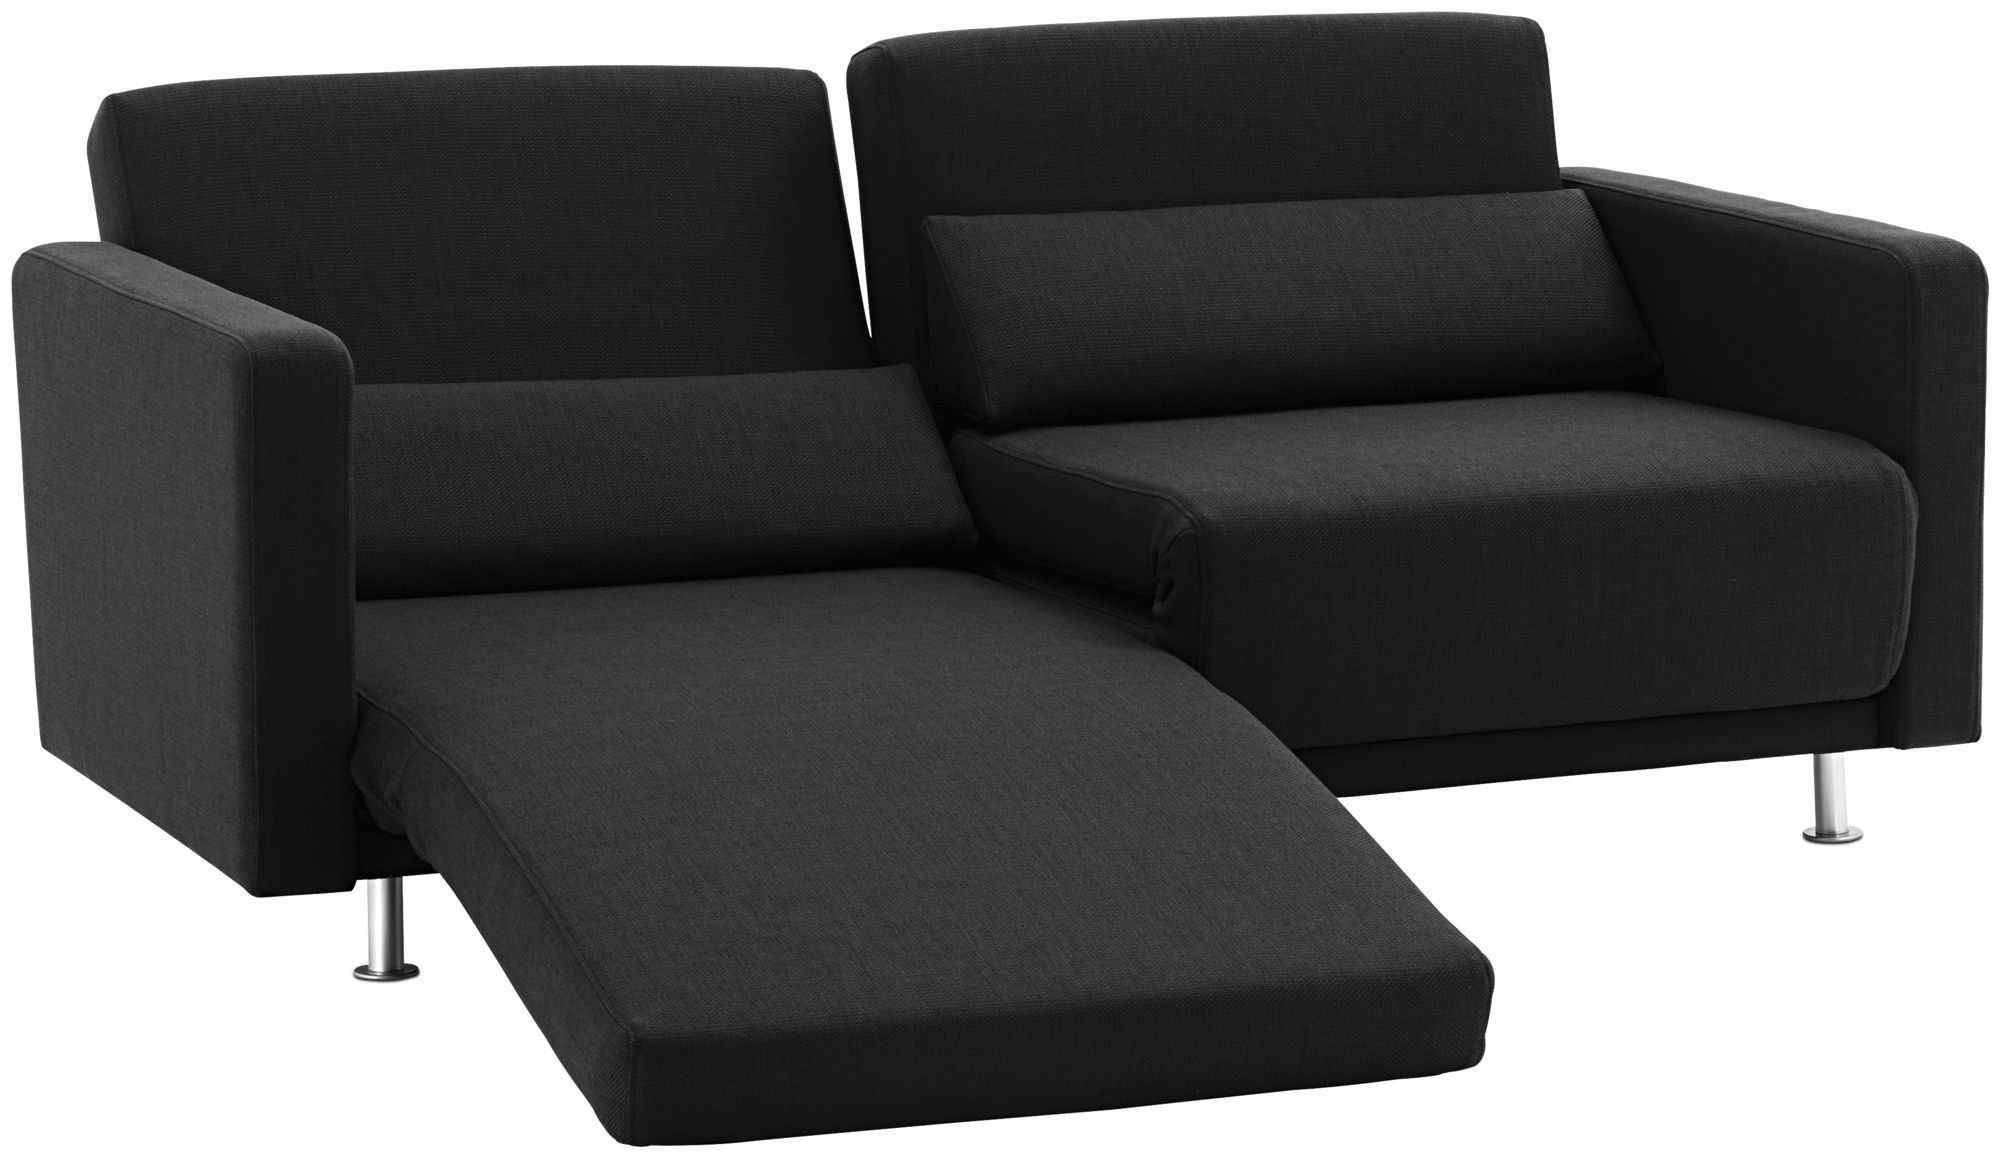 Sofa bed contemporary fabric 2 5 seater MELO BoConcept